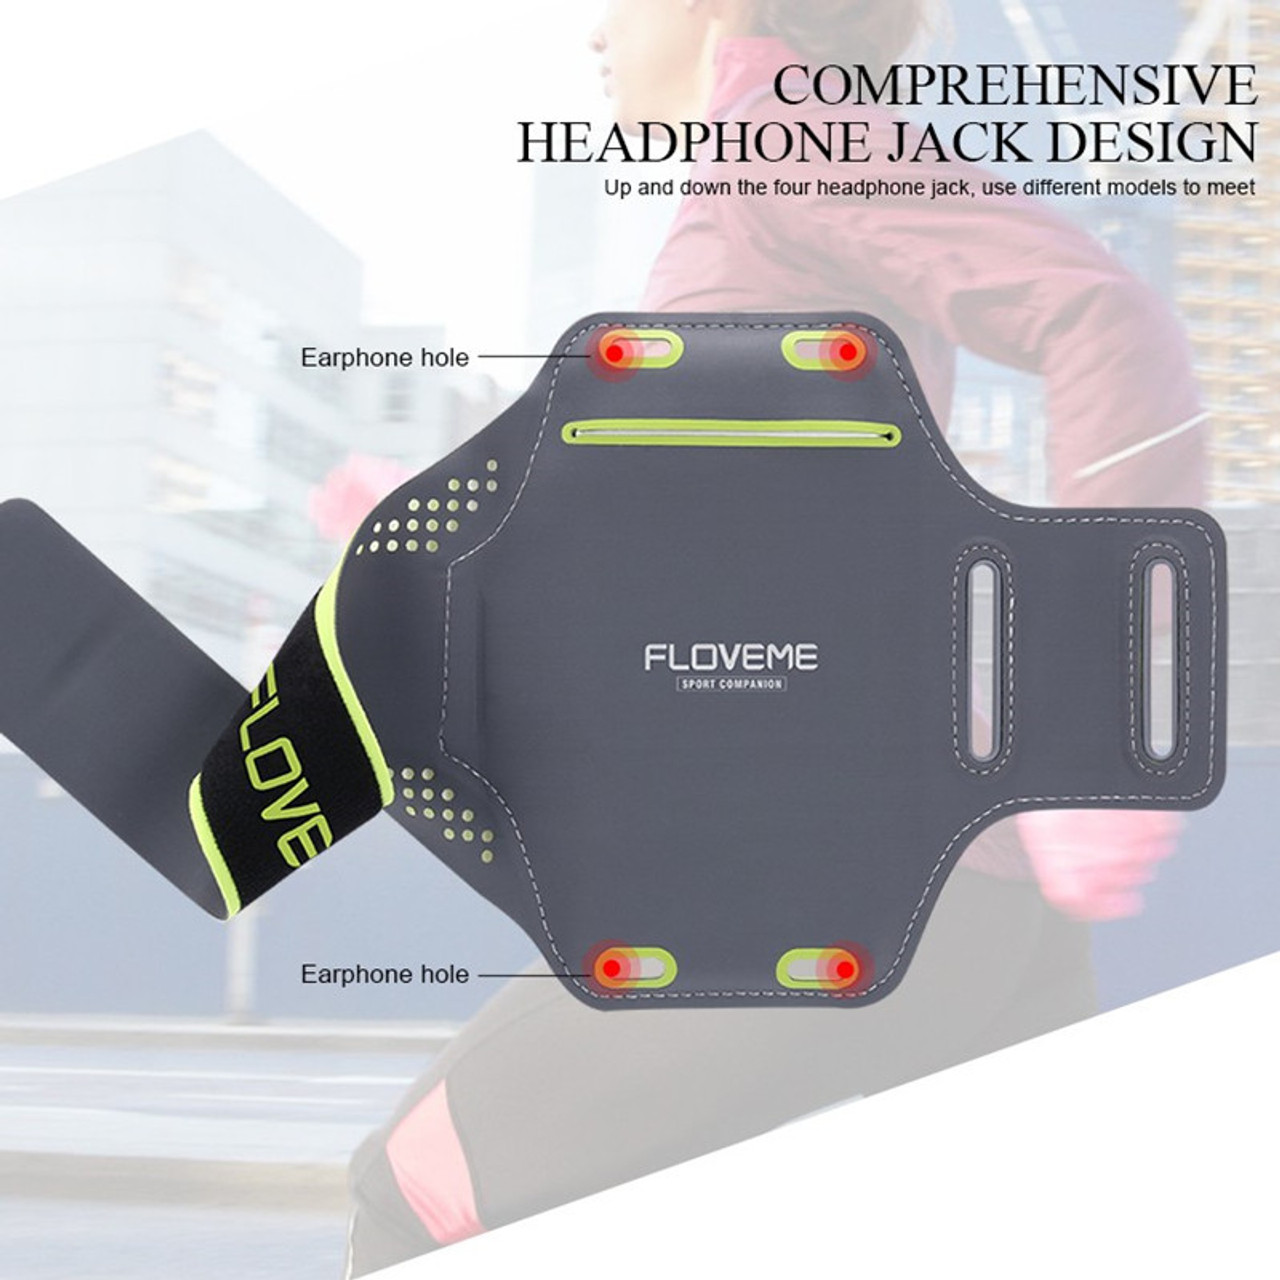 Armbands Efficient Sport Armband Running Flip Bag Case For 5 Inch Iphone Samsung Universal Smartphone Phone Earphone Holes Keys Arm Bags Pouch Outstanding Features Mobile Phone Accessories